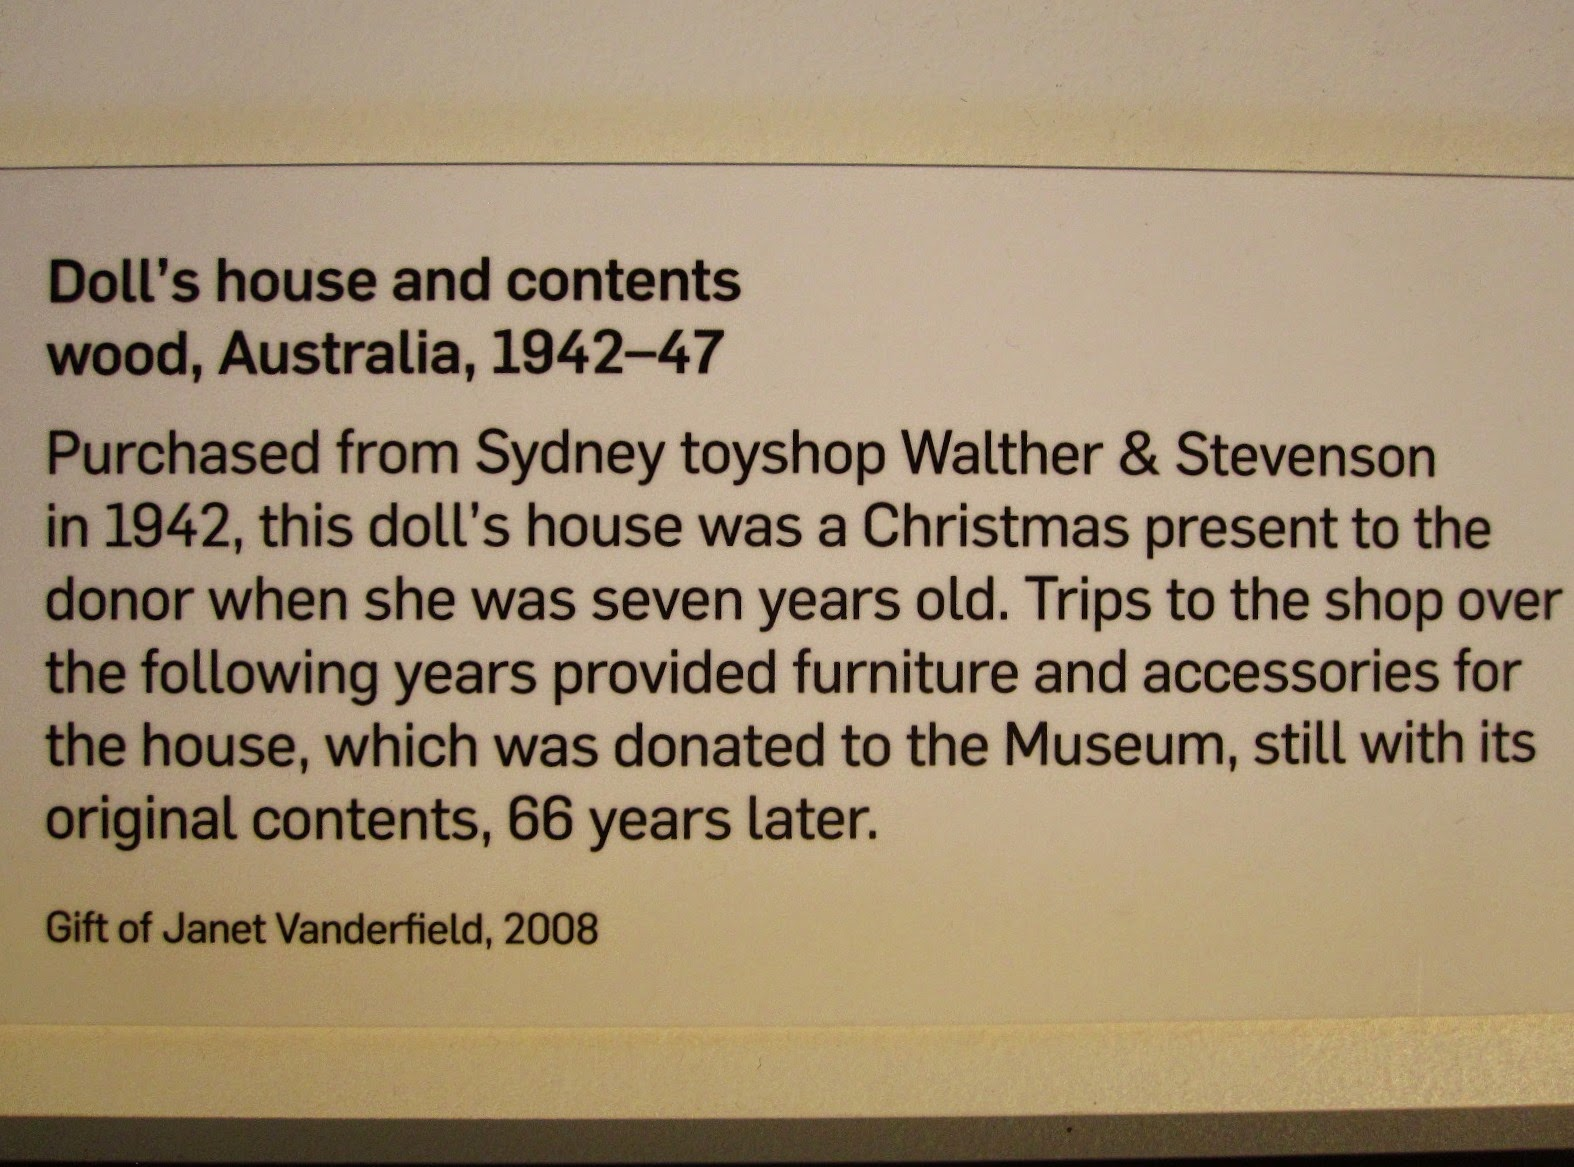 Museum sign for 'Doll's house and contents wood, 1942-47'